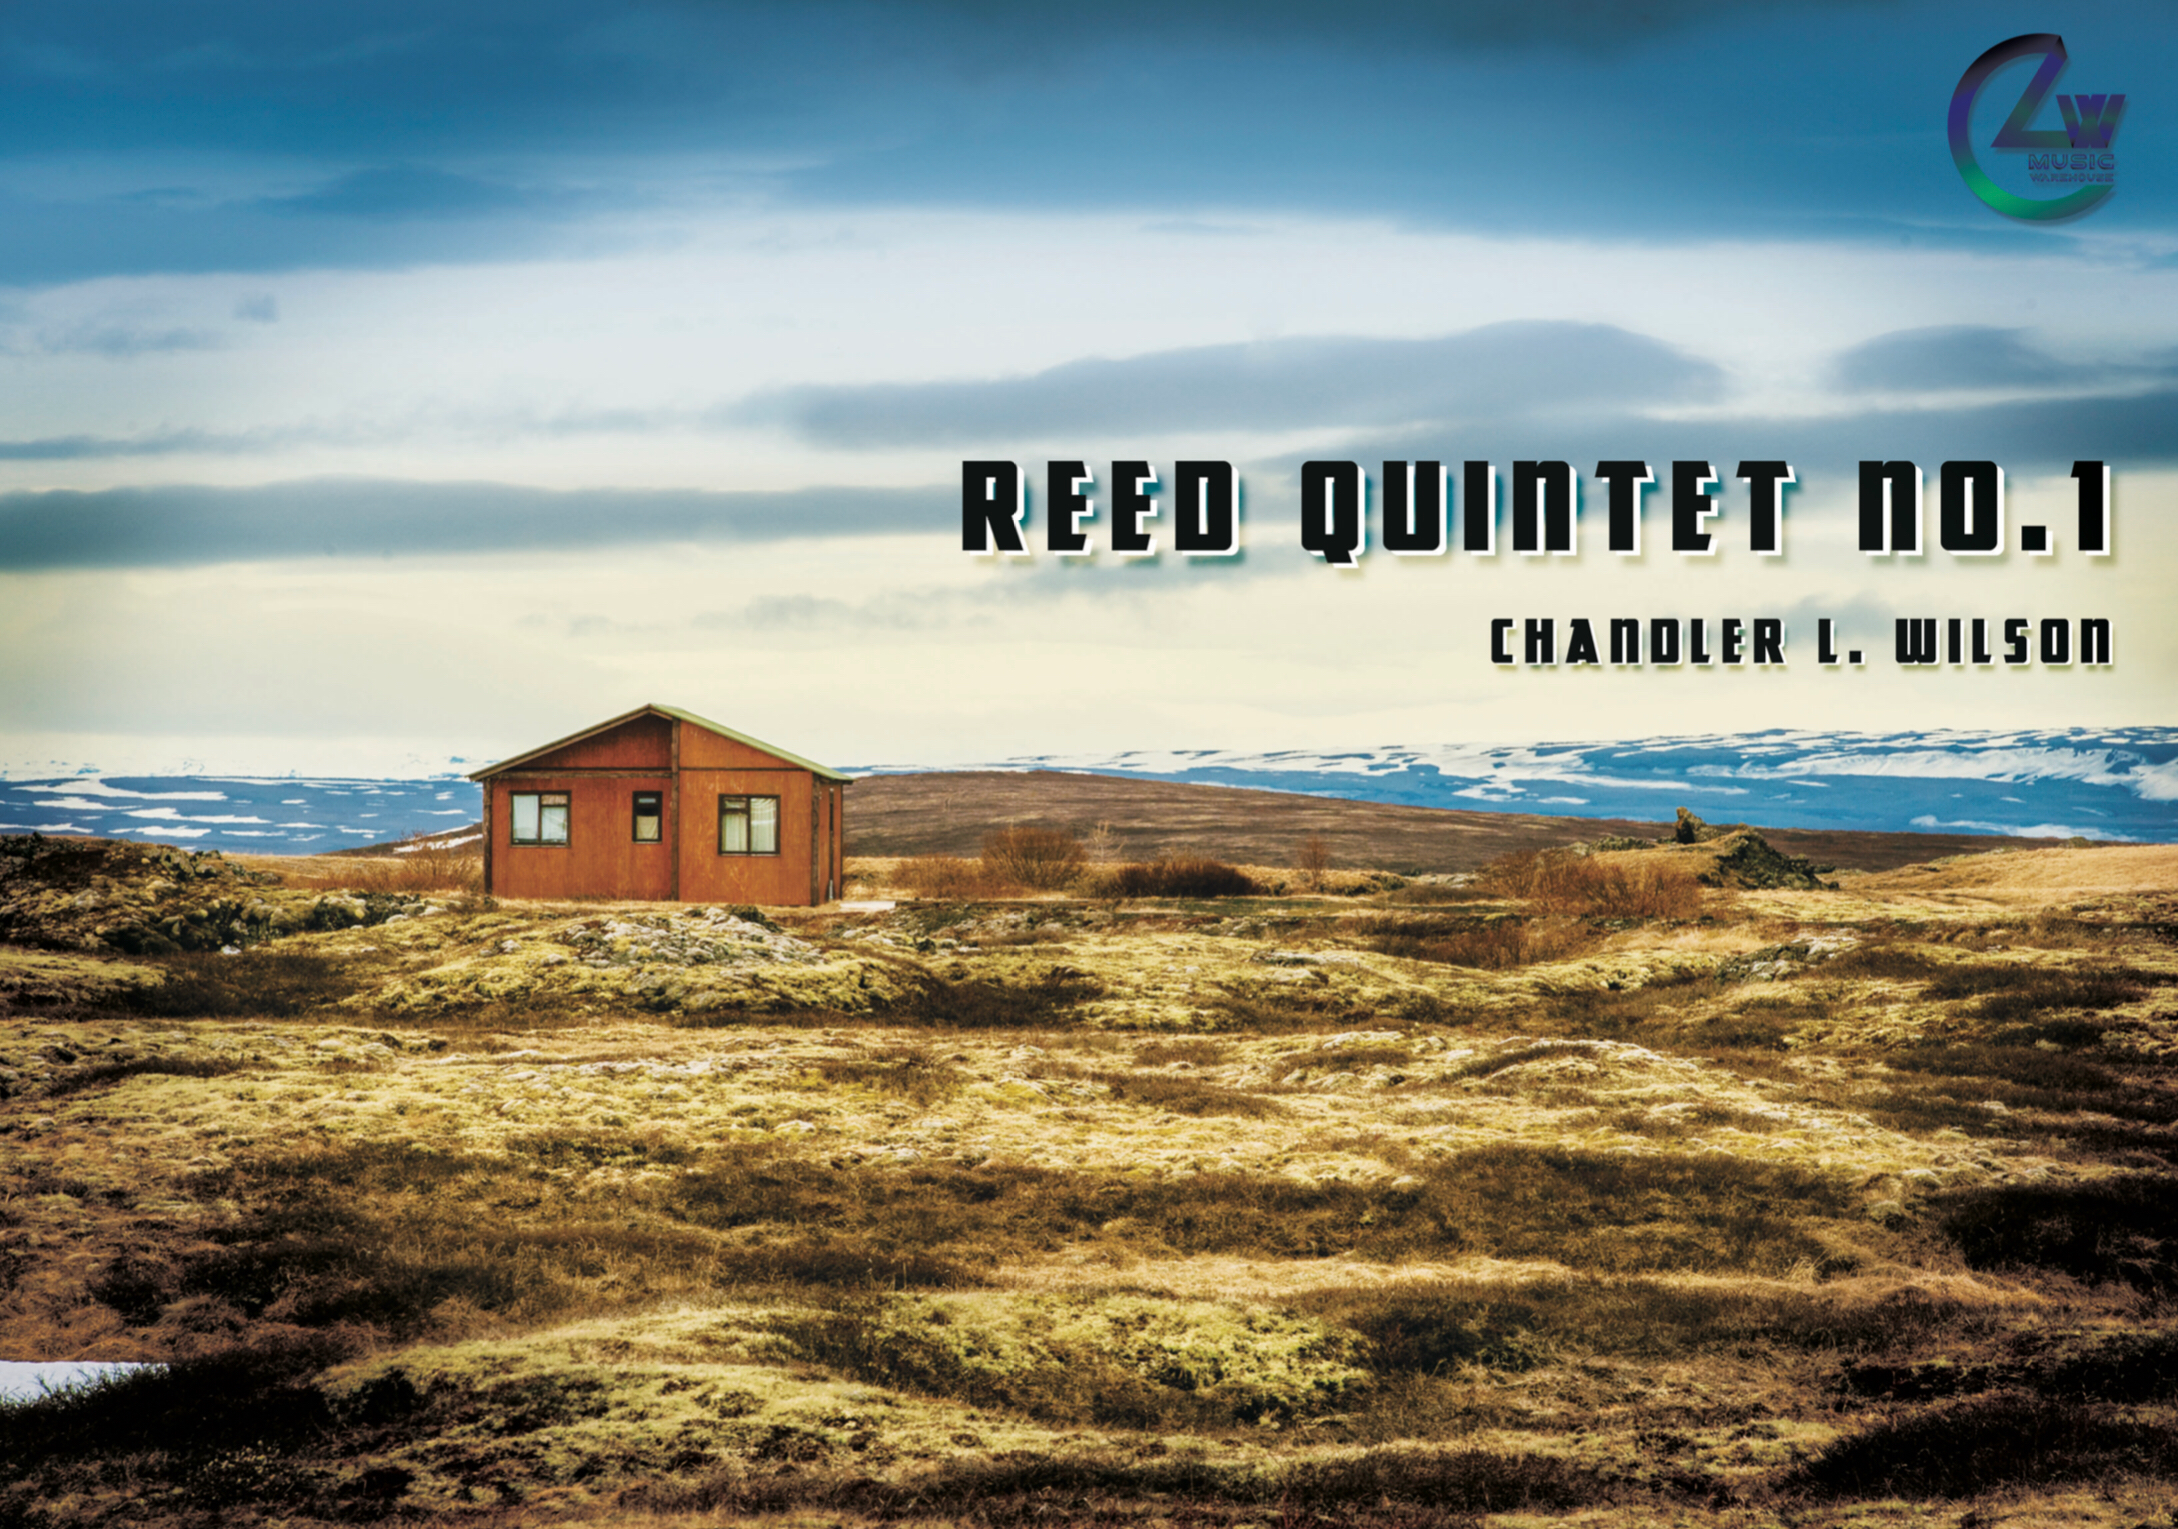 Reed Quintet No.1 by Chandler L. Wilson